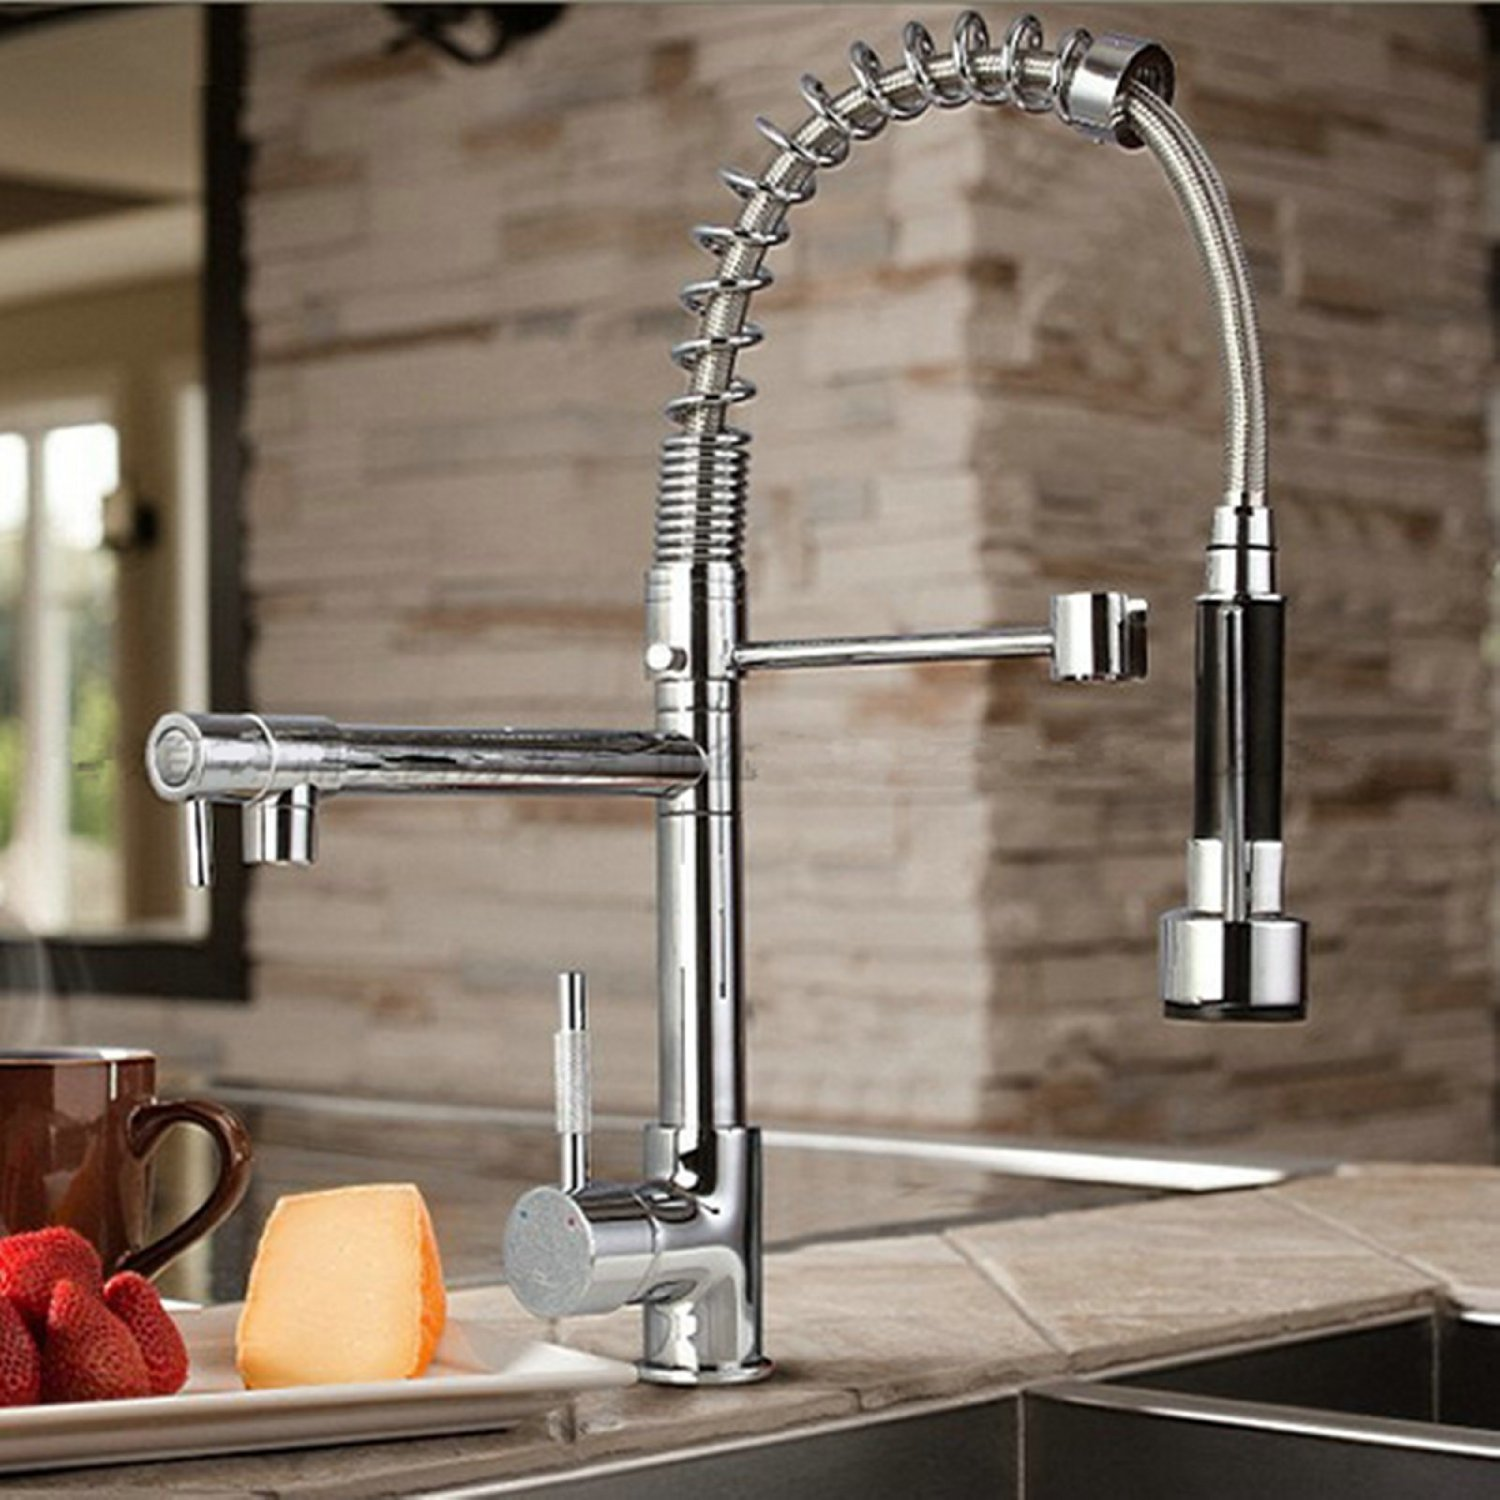 Lavatory Faucet With Sprayer Home Design Ideas